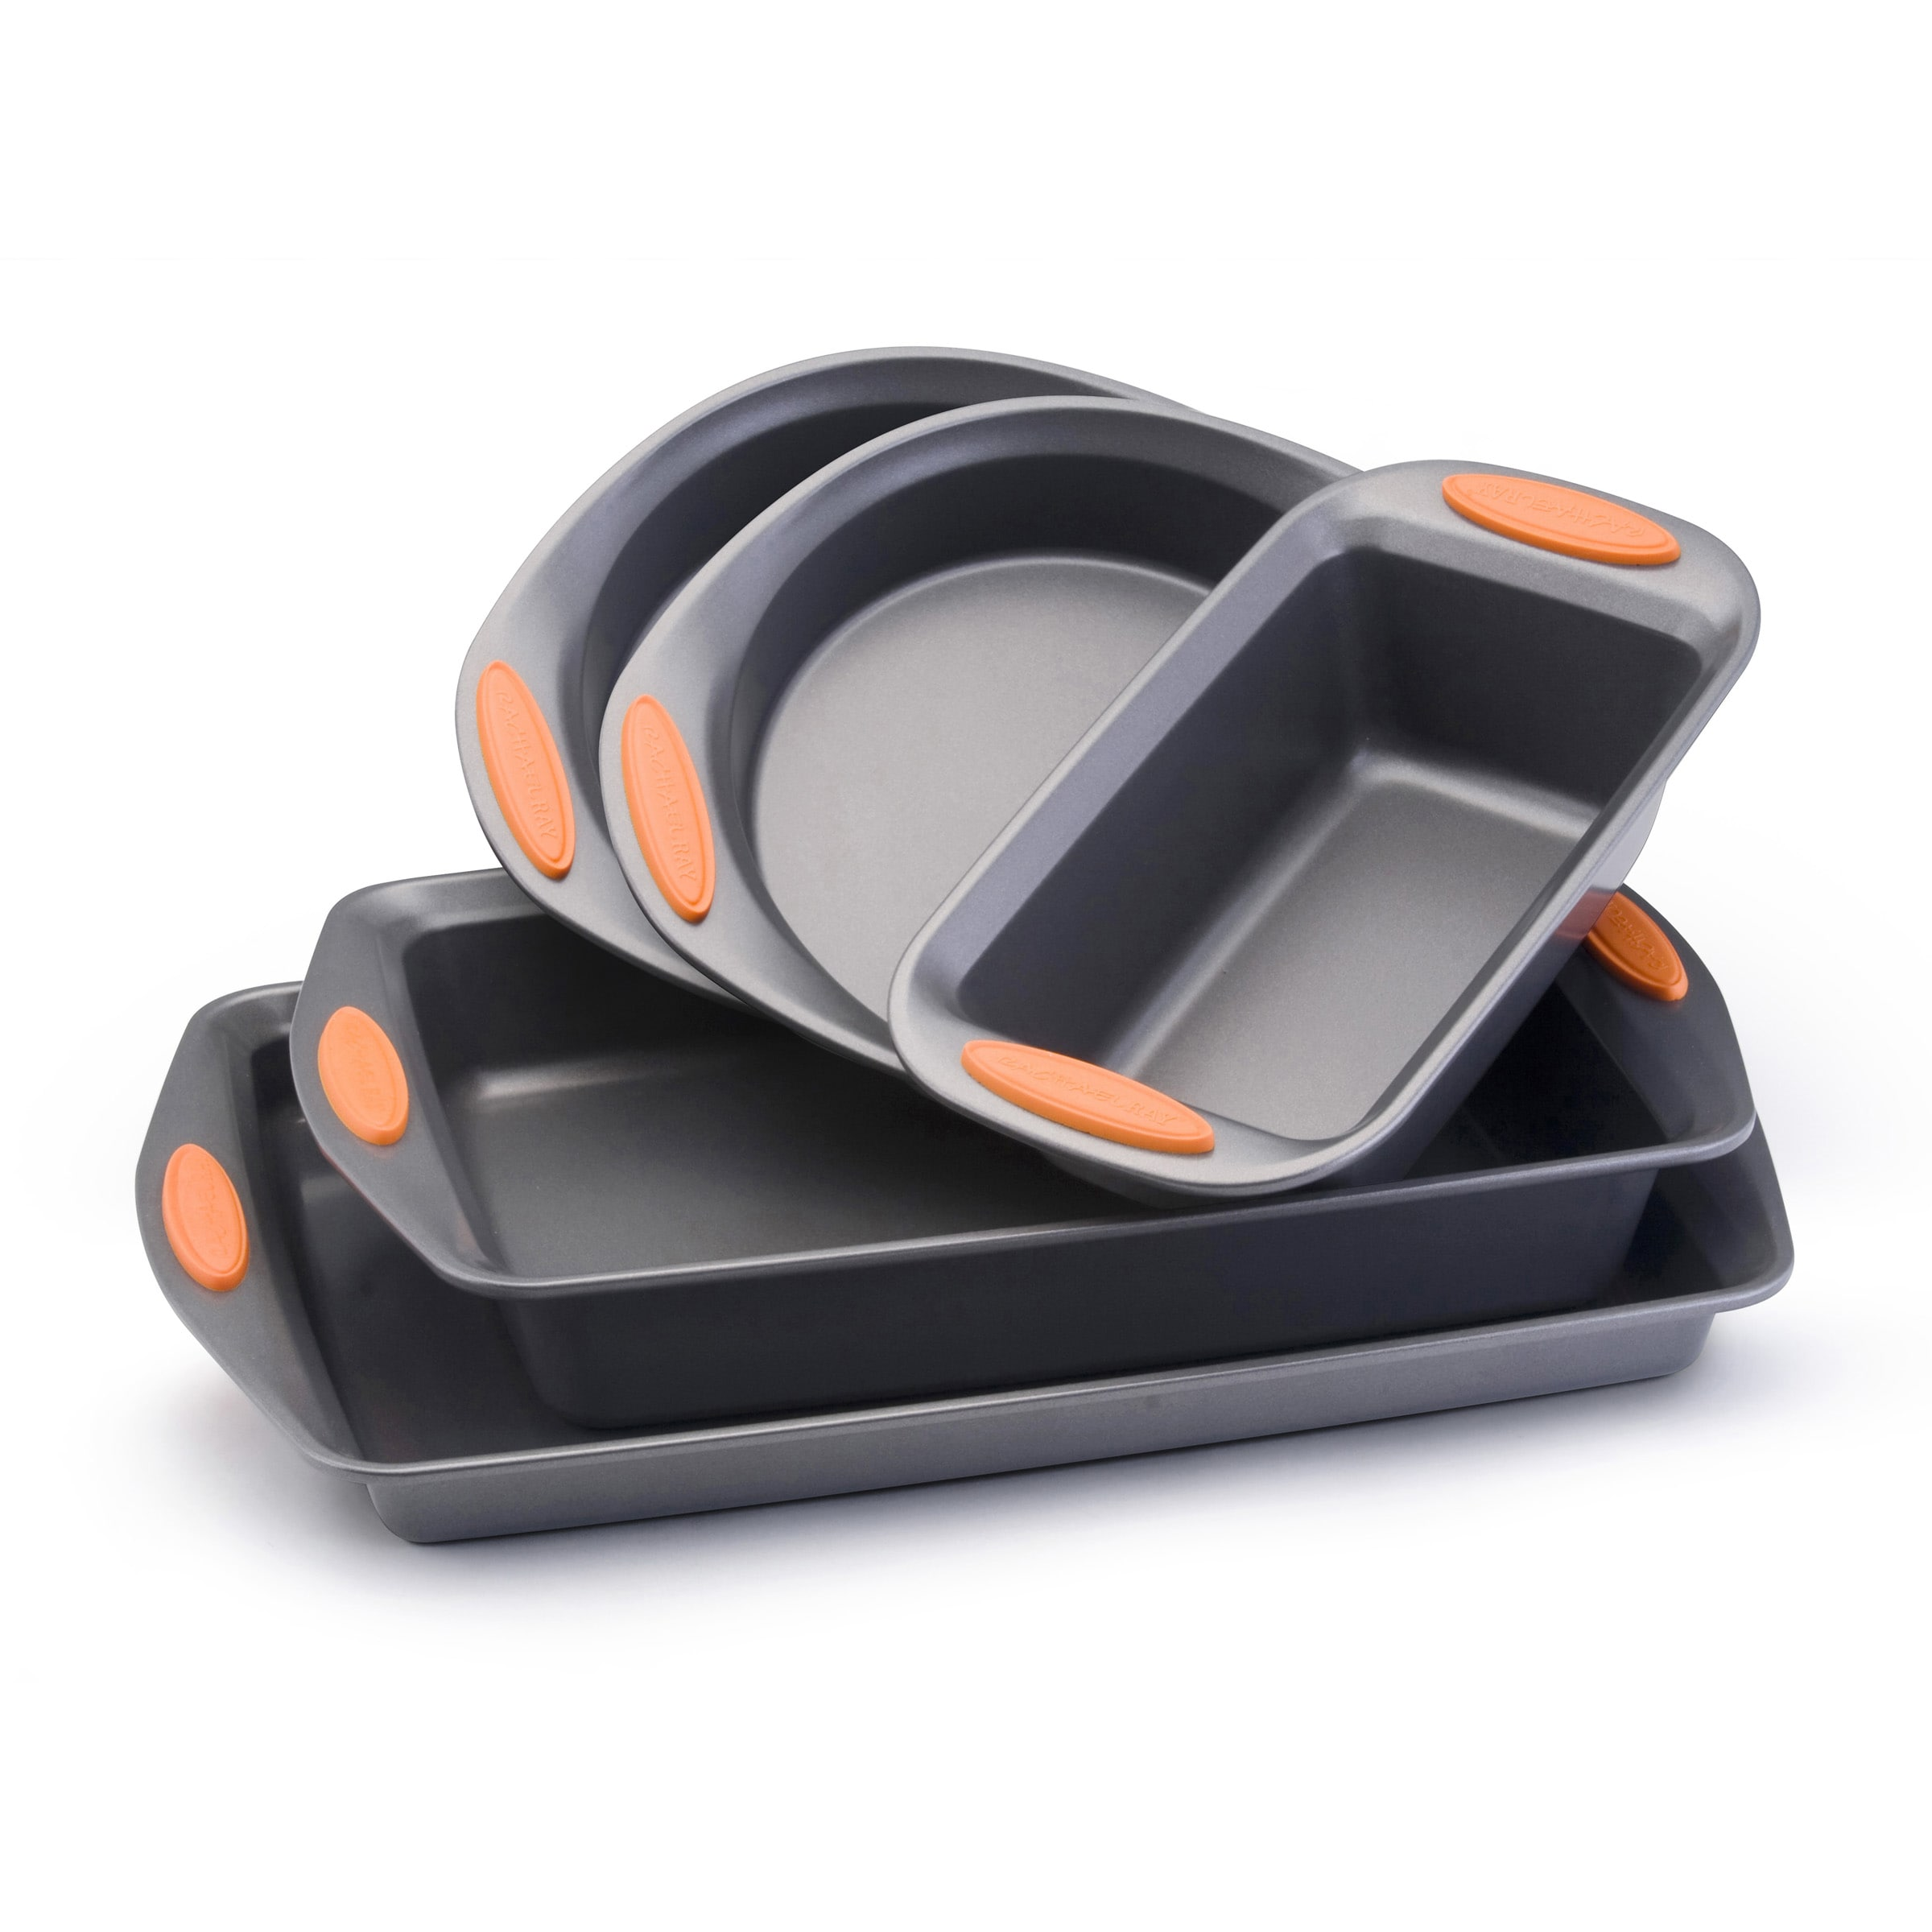 Rachael Ray Bakeware Oven Lovin' 5-Piece Set, Black (Metal)